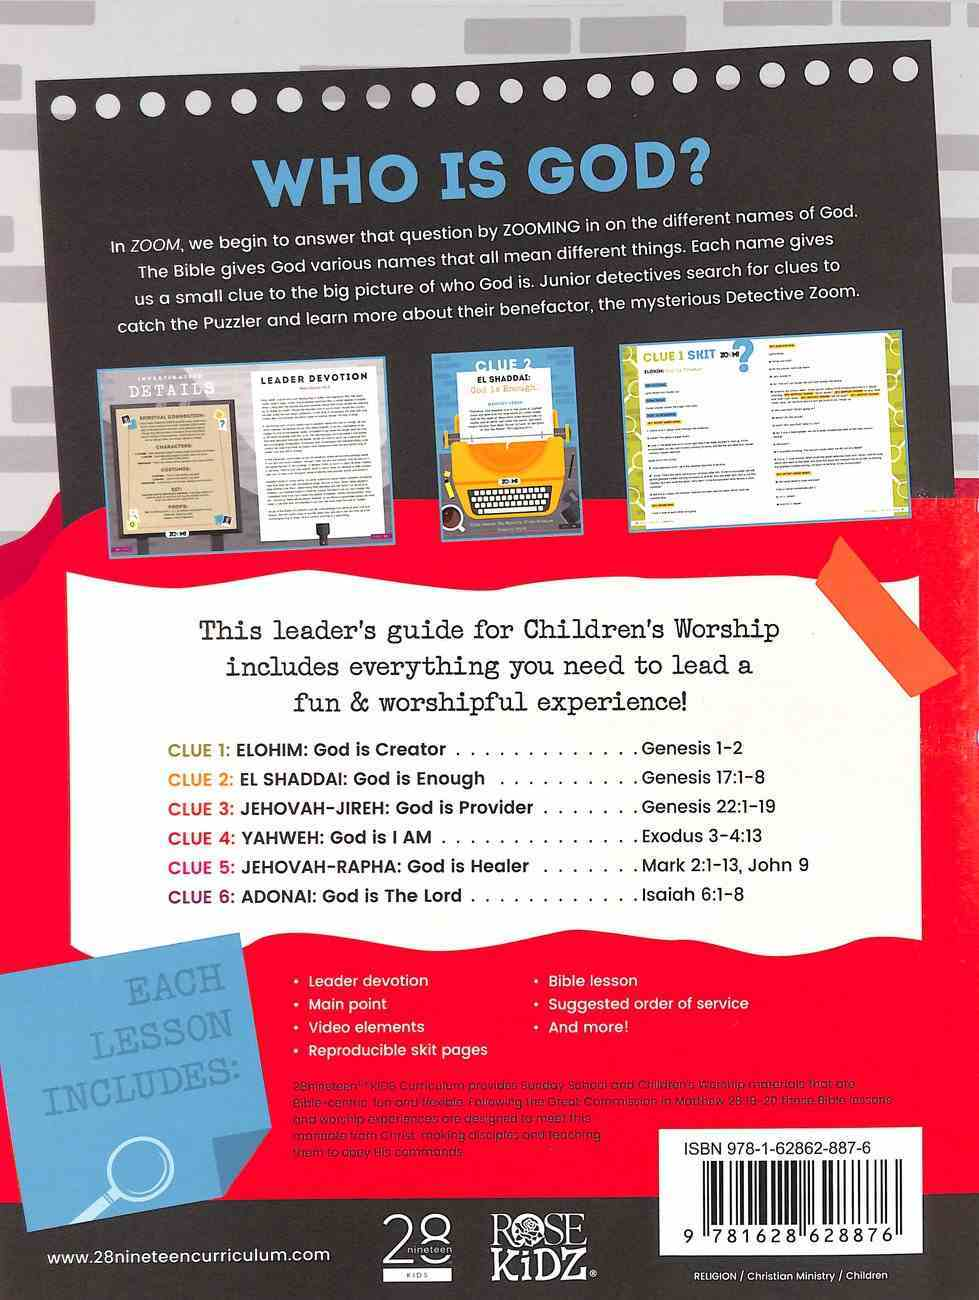 The Names of God Children's Worship (Program Guide) (Zoom! Curriculum Series) Paperback